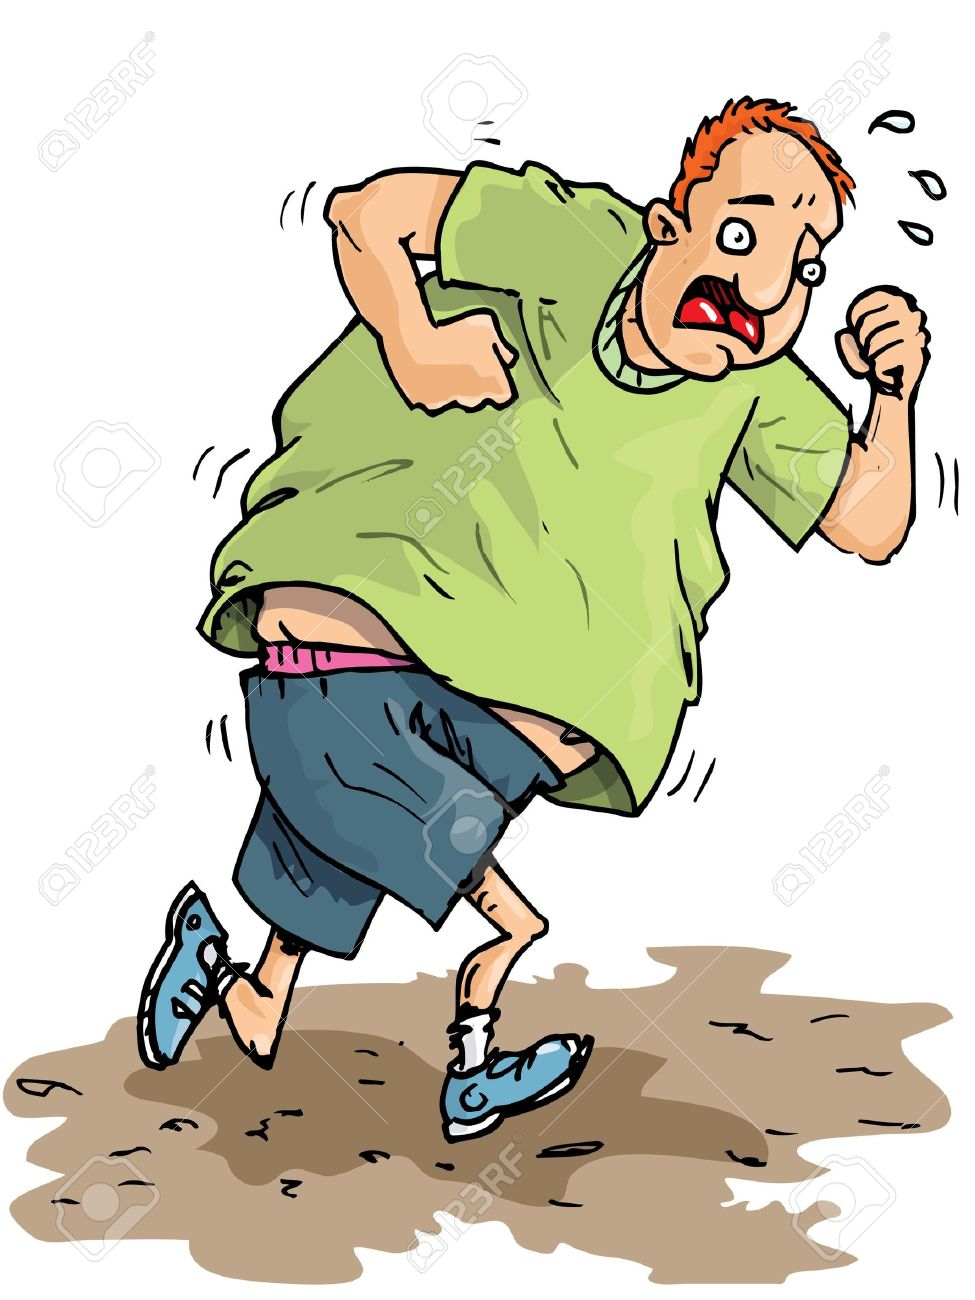 975x1300 Cartoon Of A Fat Jogger Trying To Get Fit. Sweating And Not